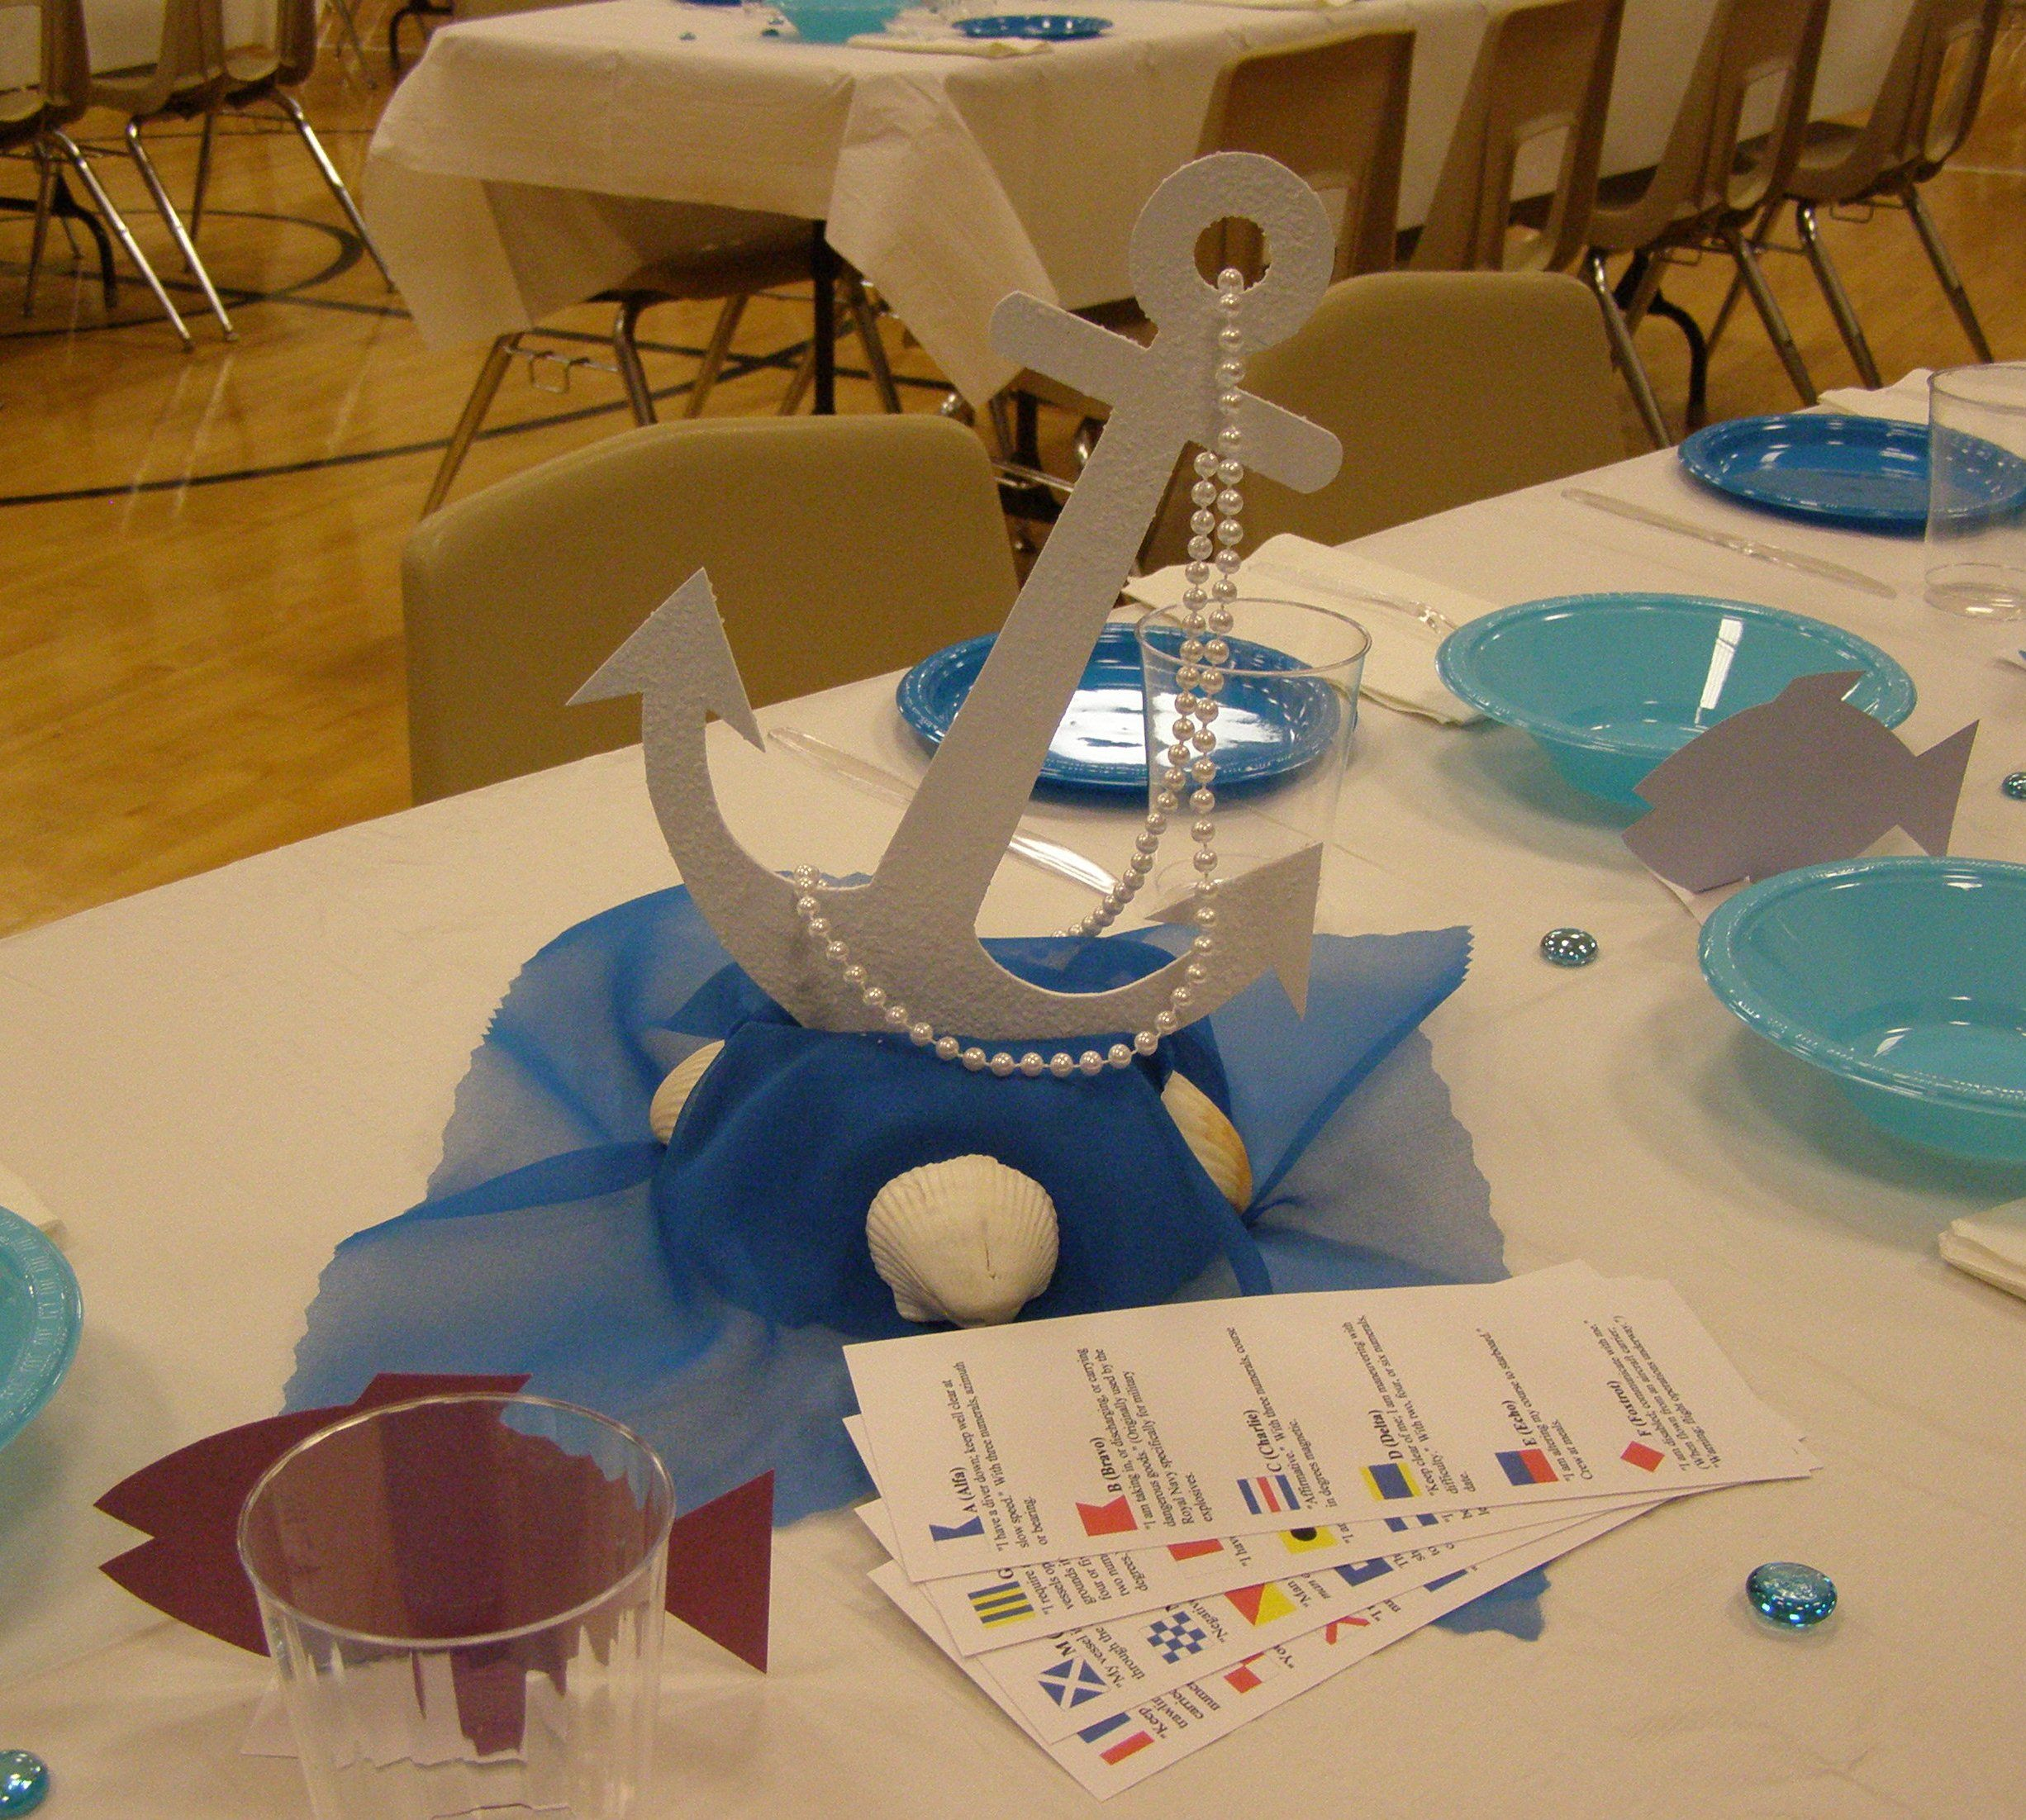 Pin by Gail Mayer on centerpieces Cruise theme parties